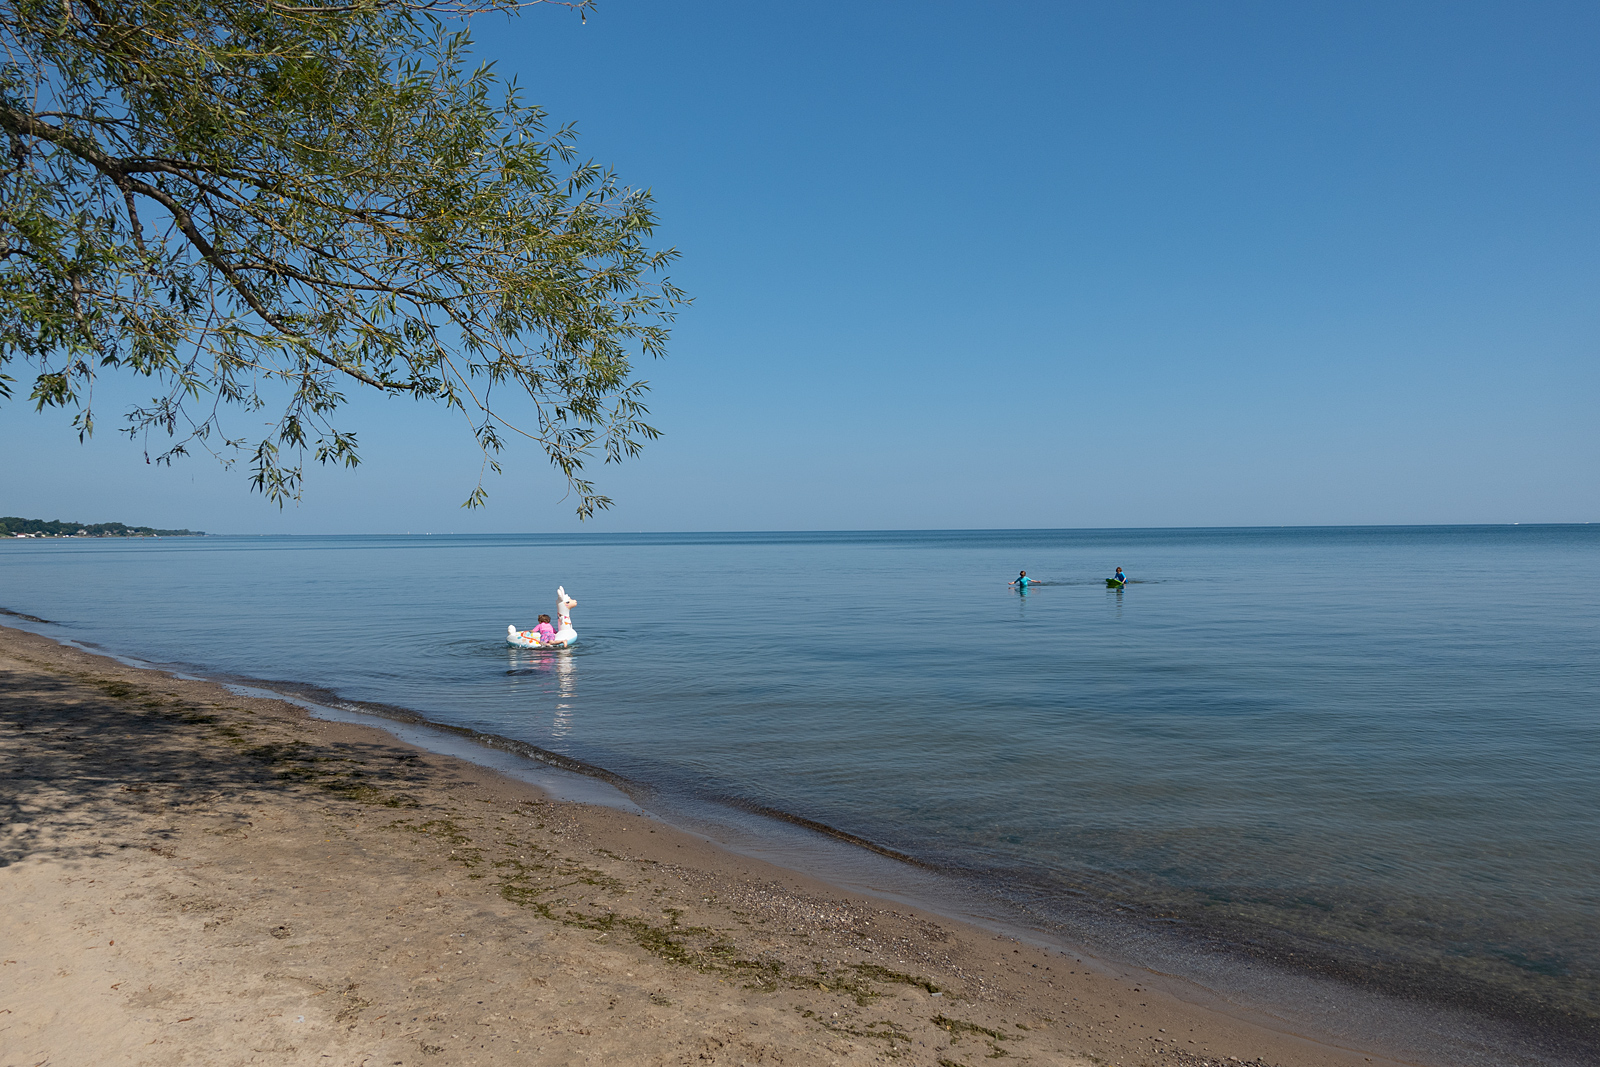 Kids in the water at Durand Eastman beach